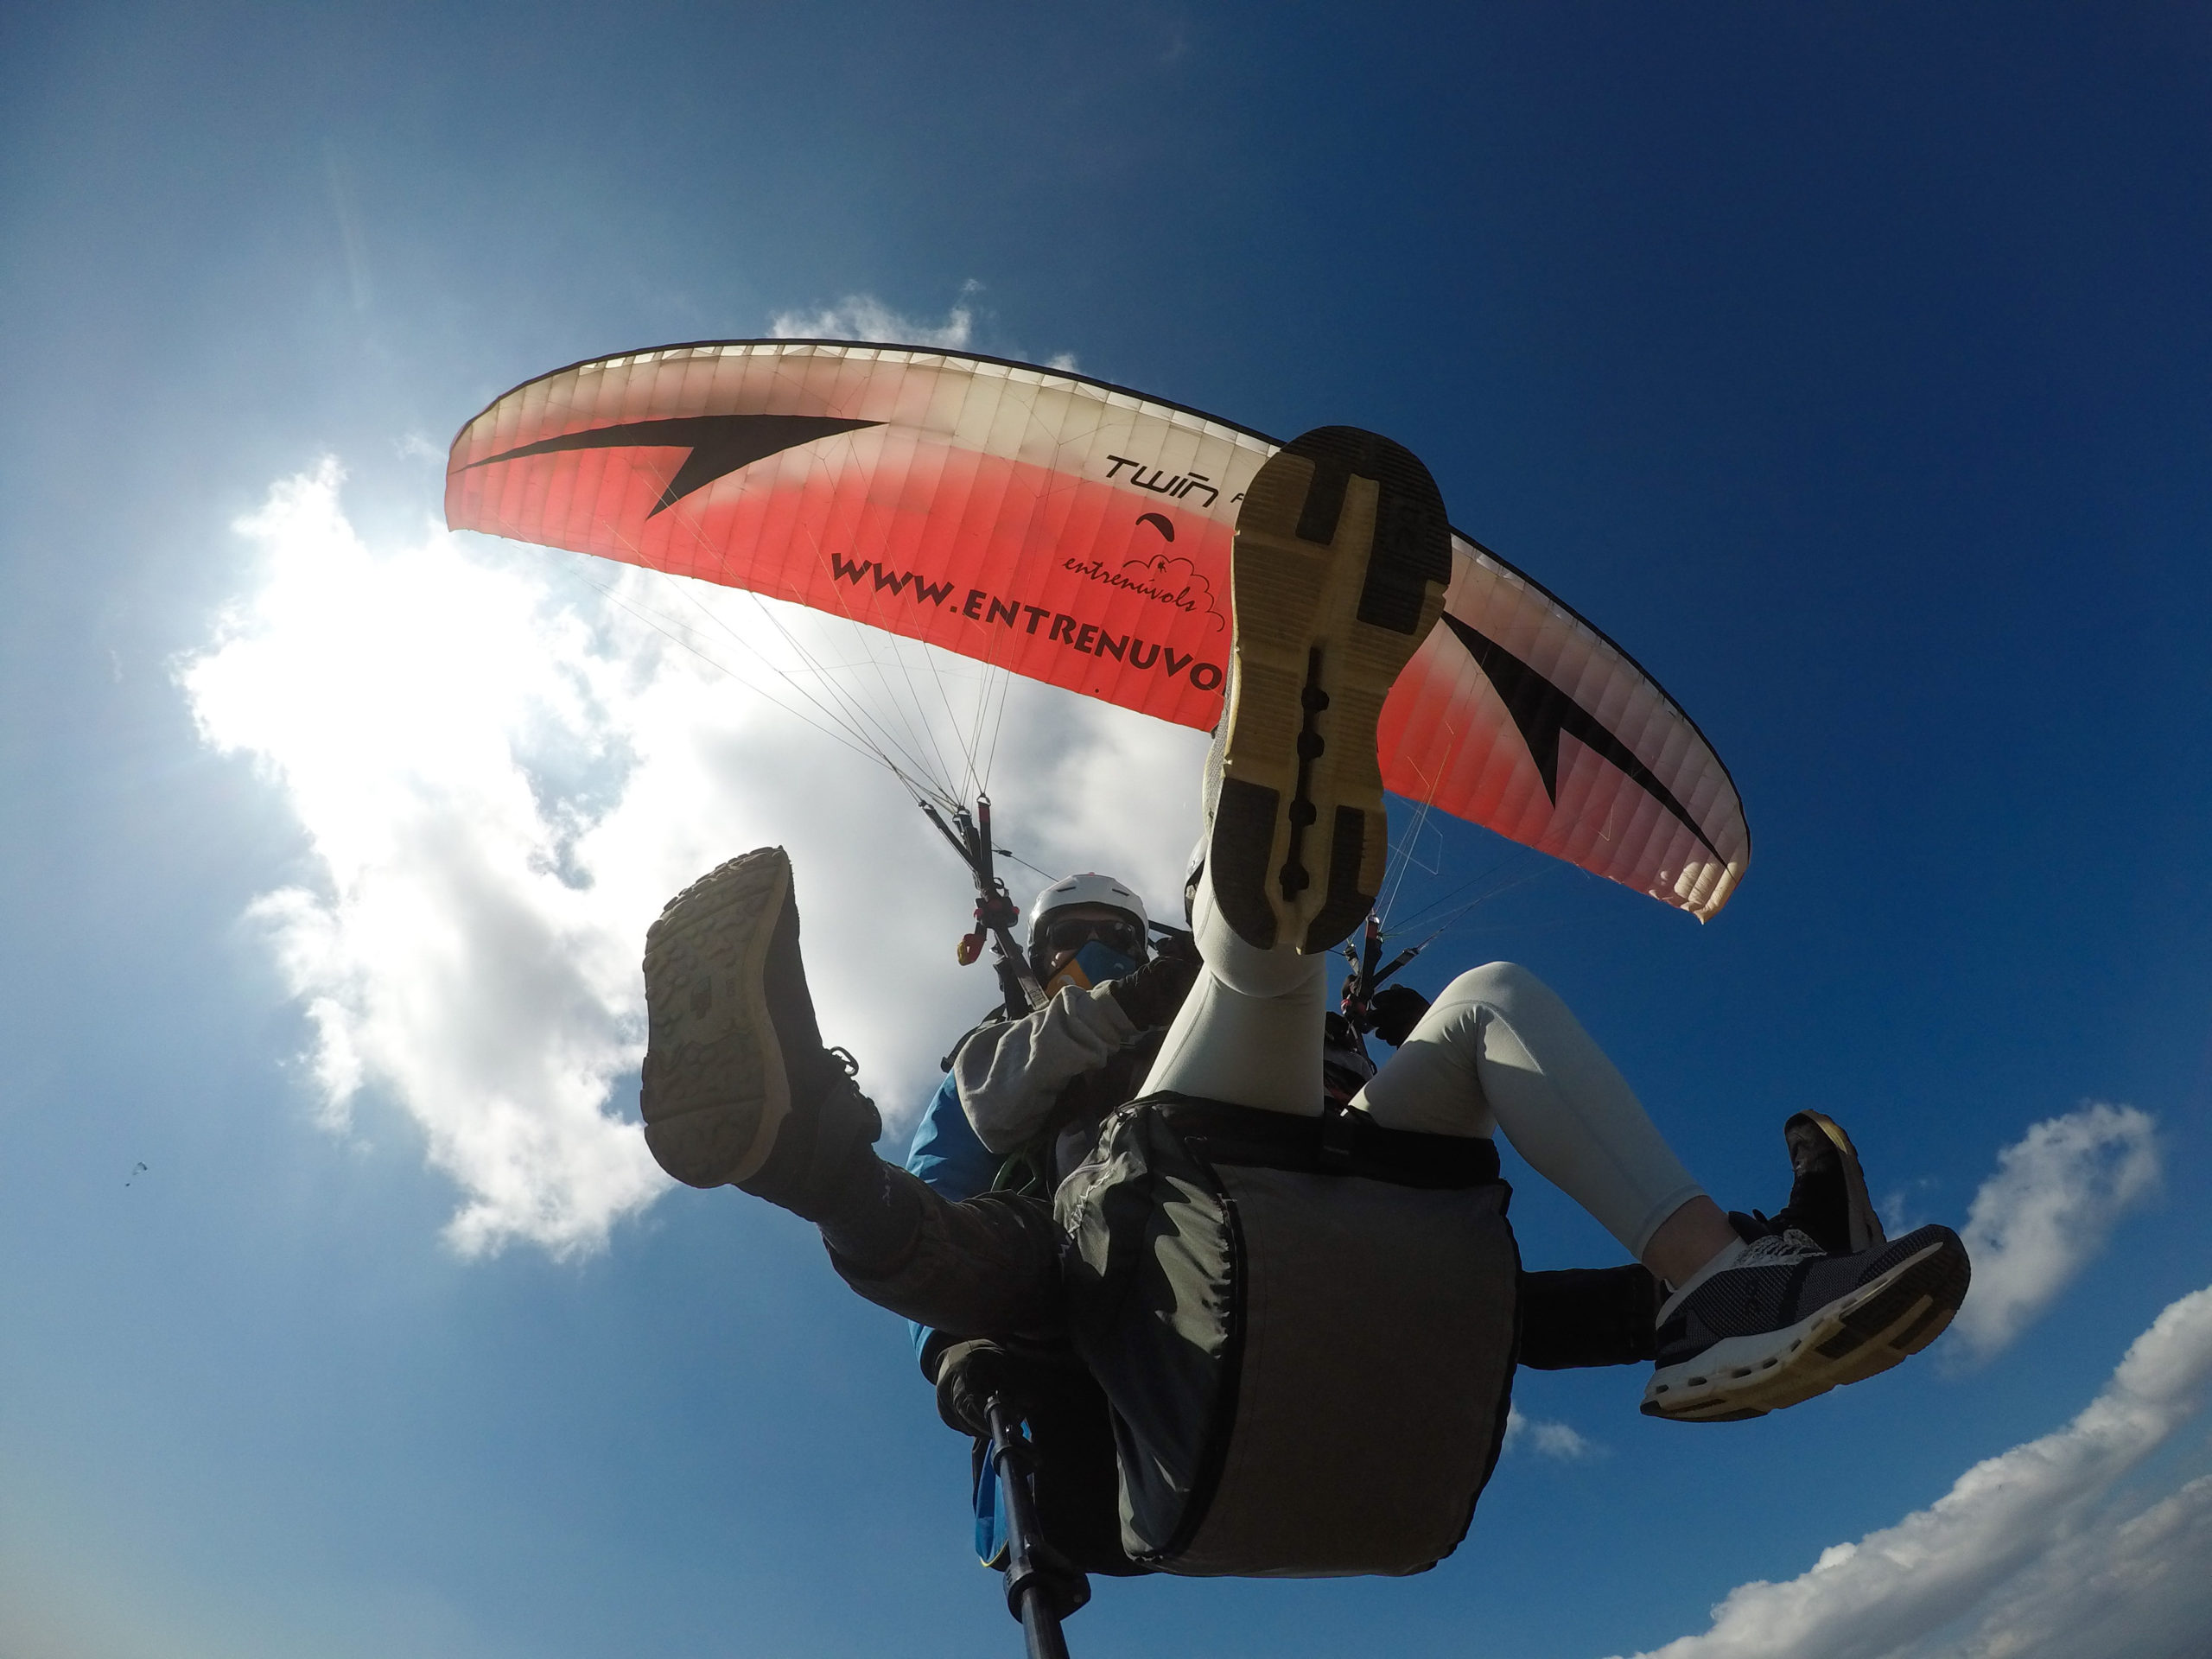 Fly with Xirli paragliding tandem 15